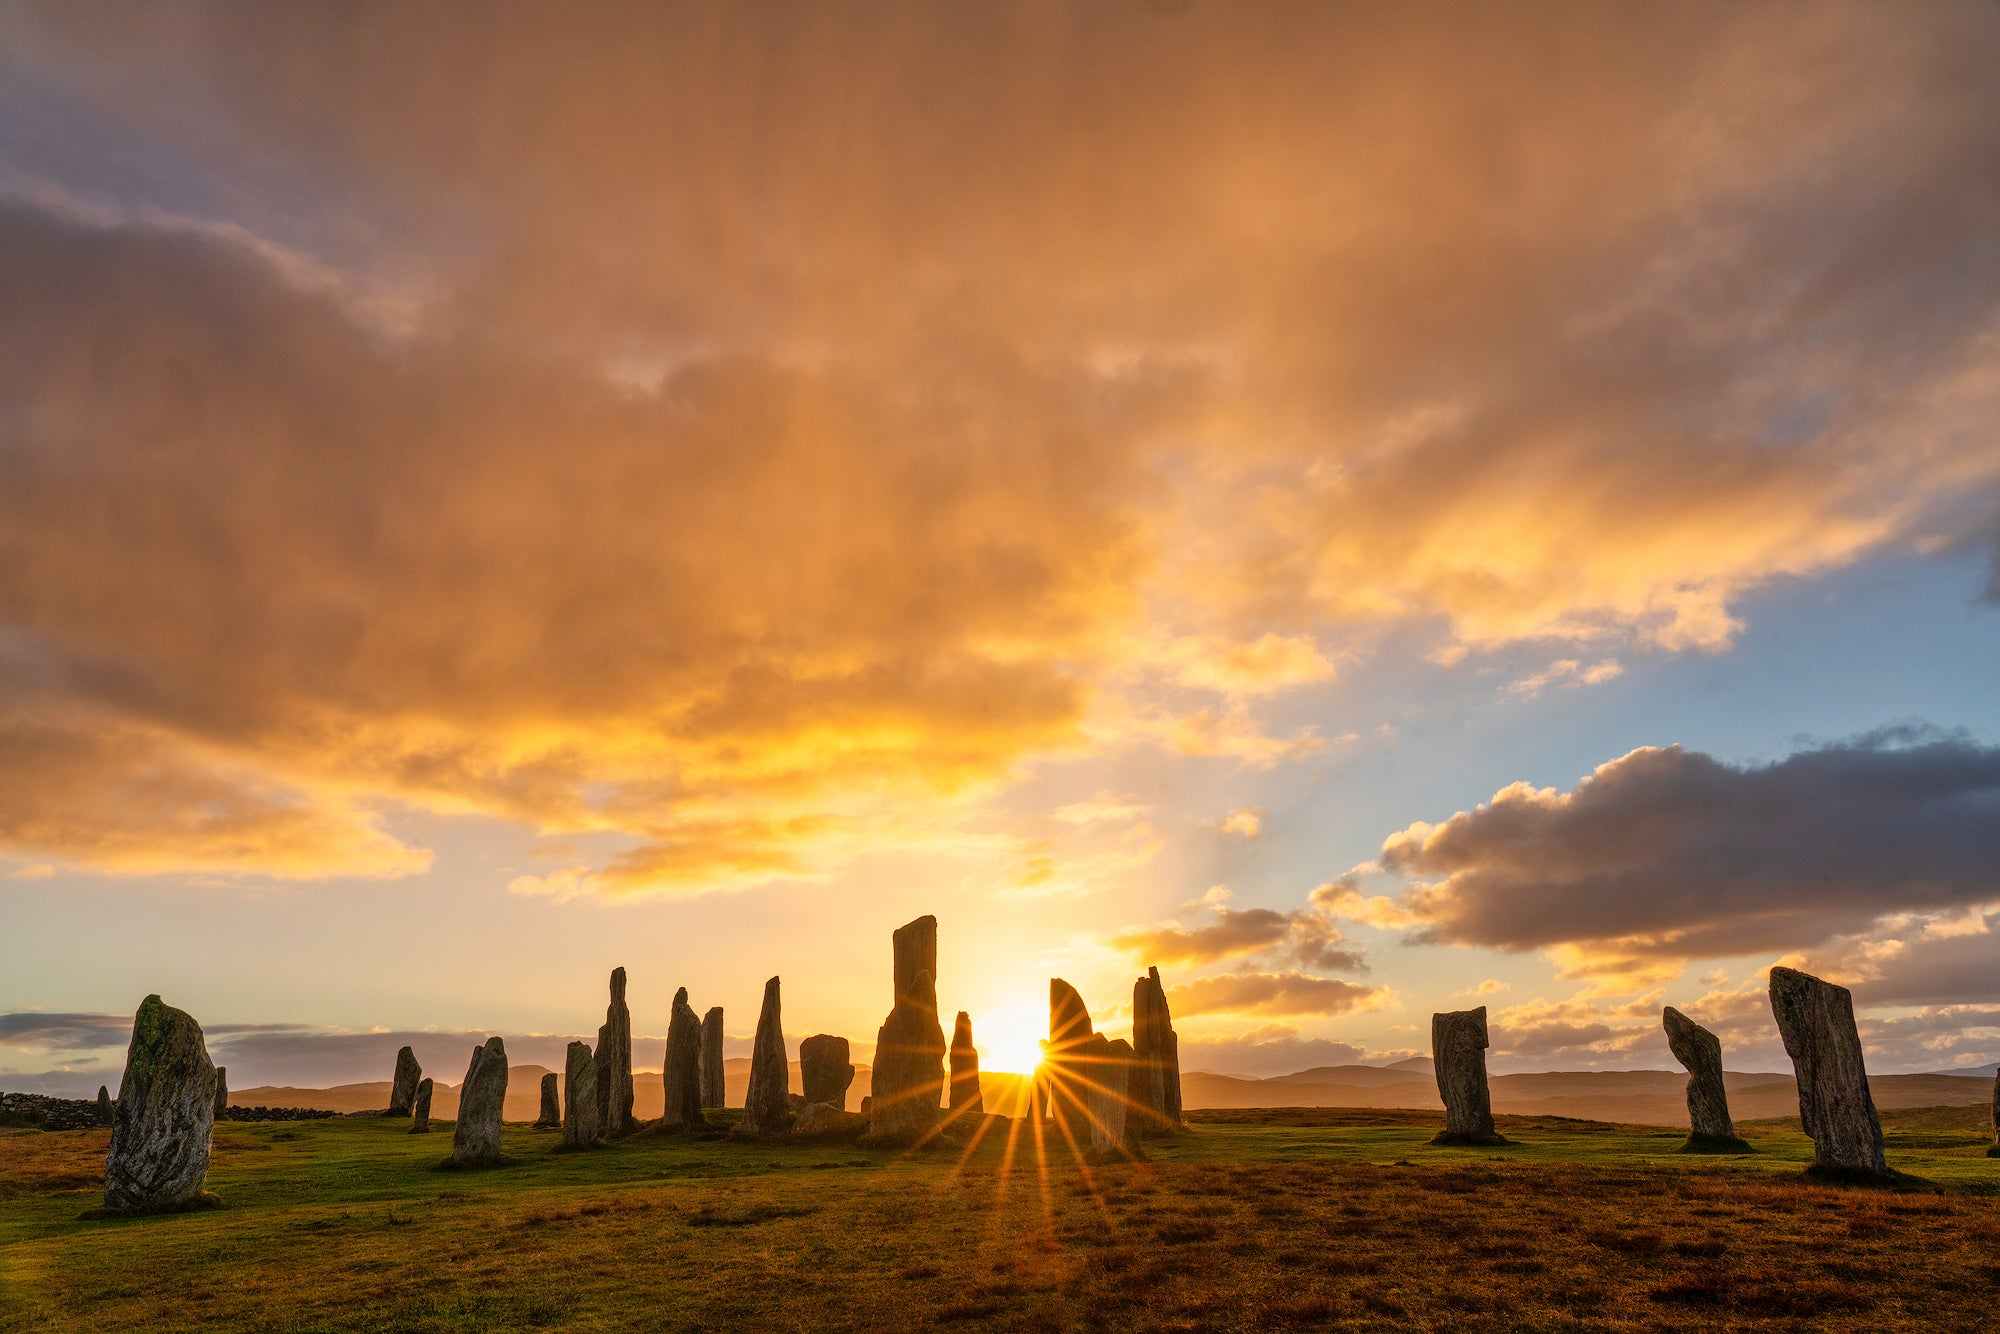 Alpha-Universe-Sony-Artisan-Don-Smith-Sunset-Over-Callanish-Stones--Isle-of-Harris-copy.jpg